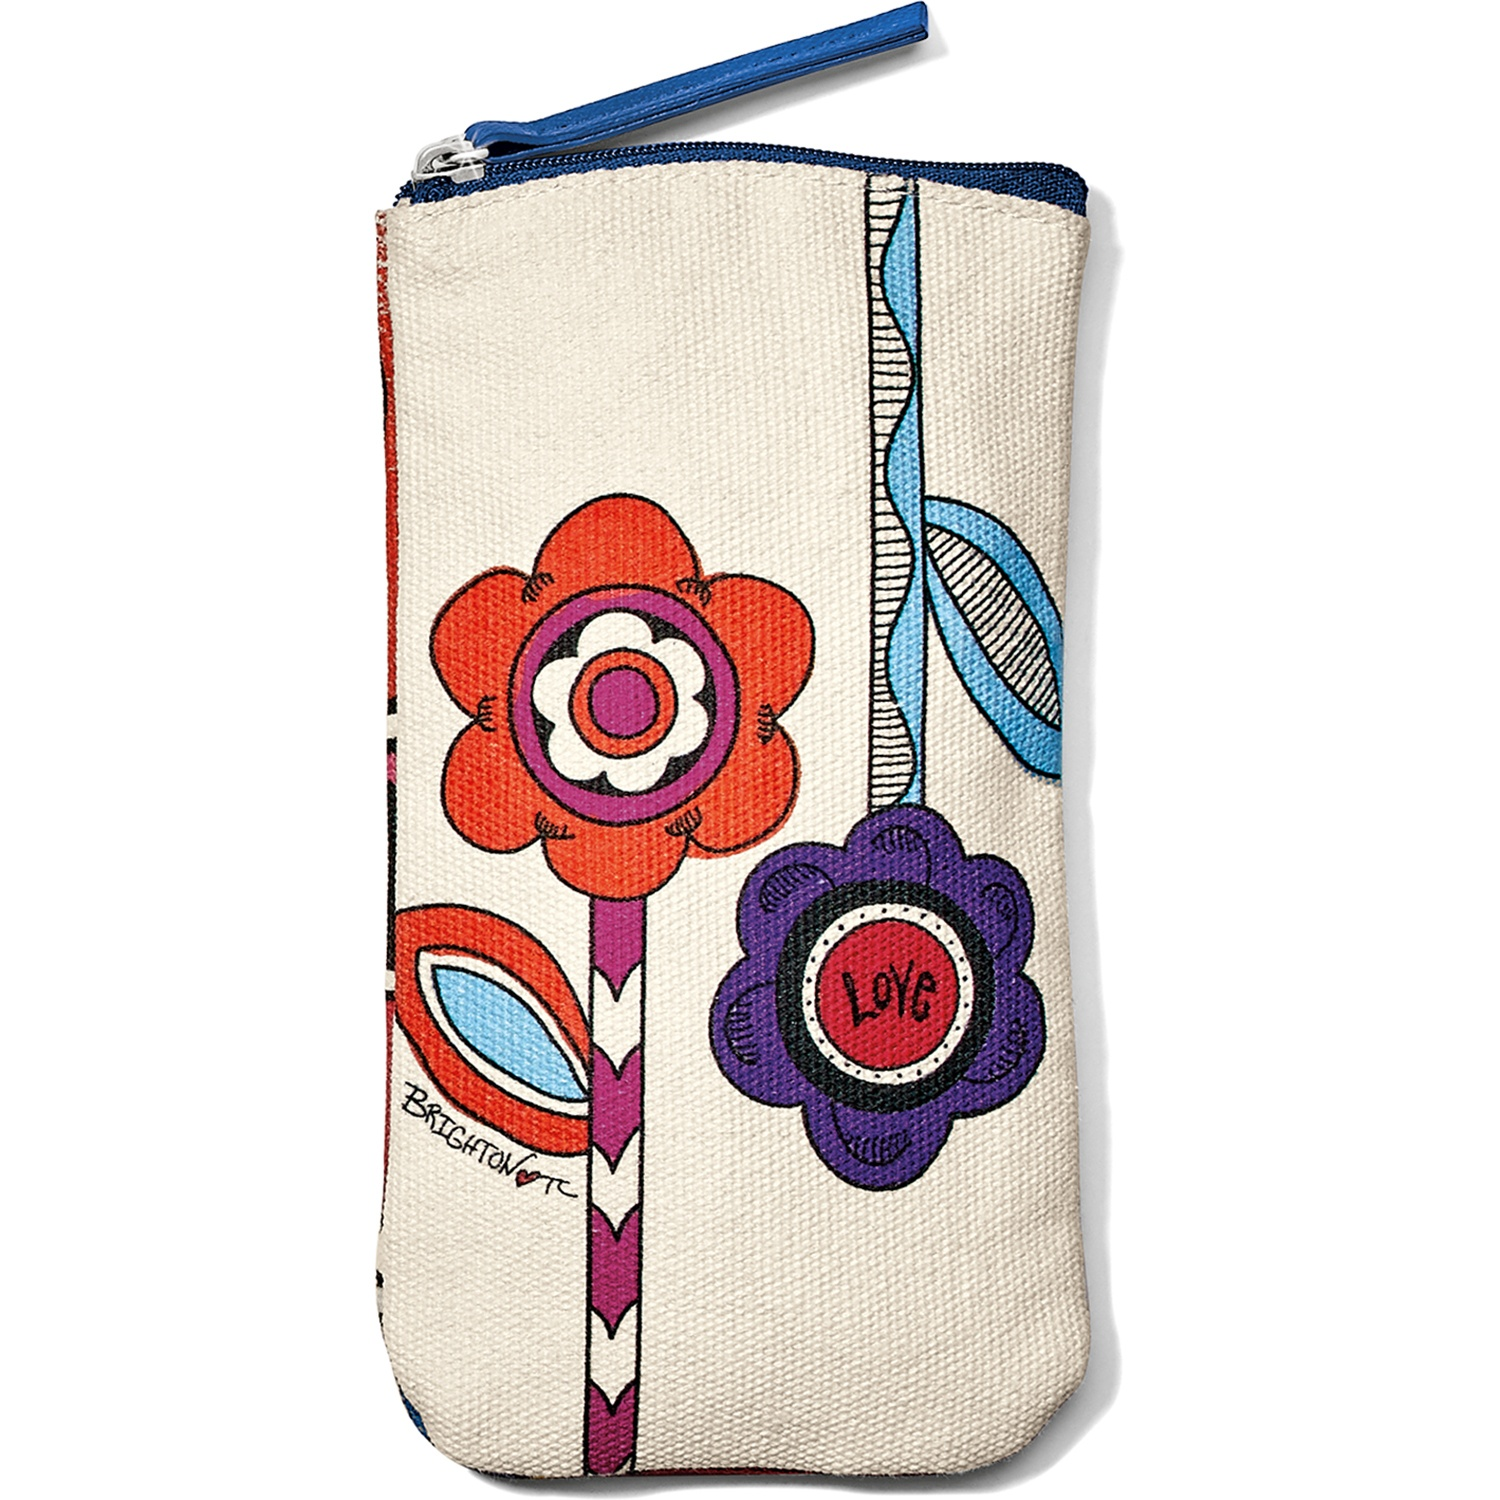 LOVE GROOVE Love Groove Zip Eyeglass Case Small Collectibles | Tuggl